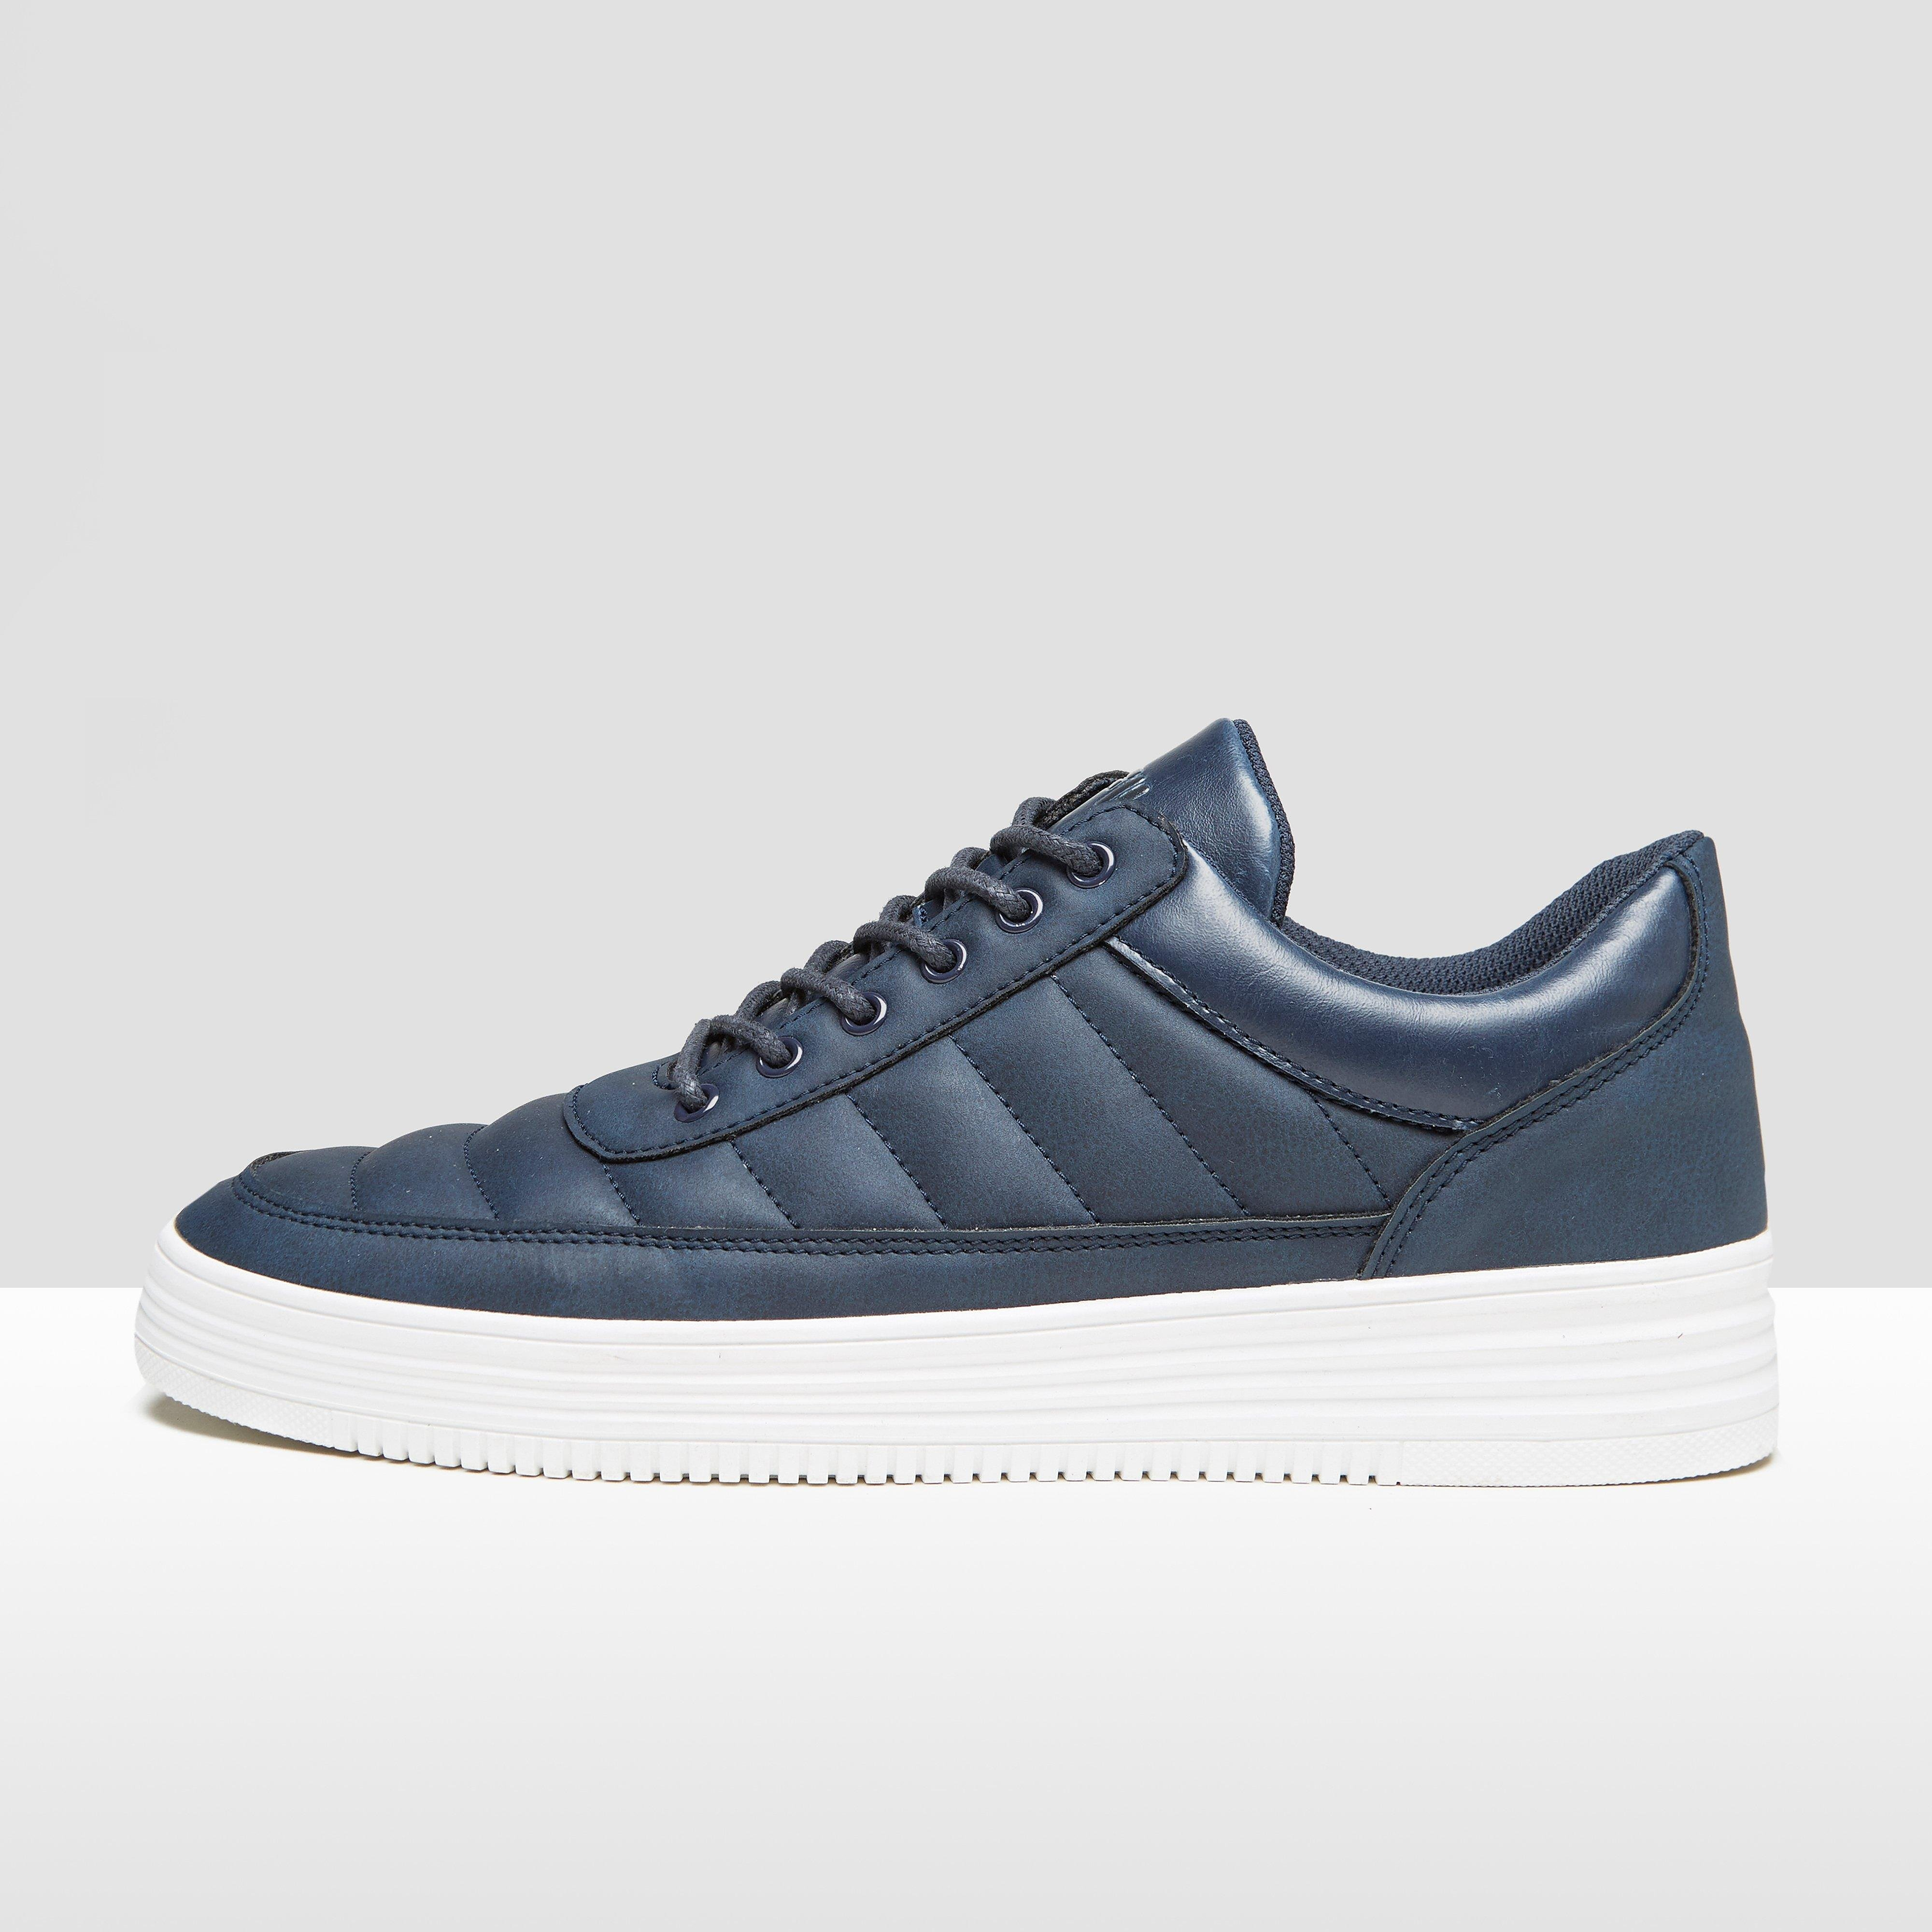 FILA DOWNTOWN LOW SNEAKERS BLAUW HEREN